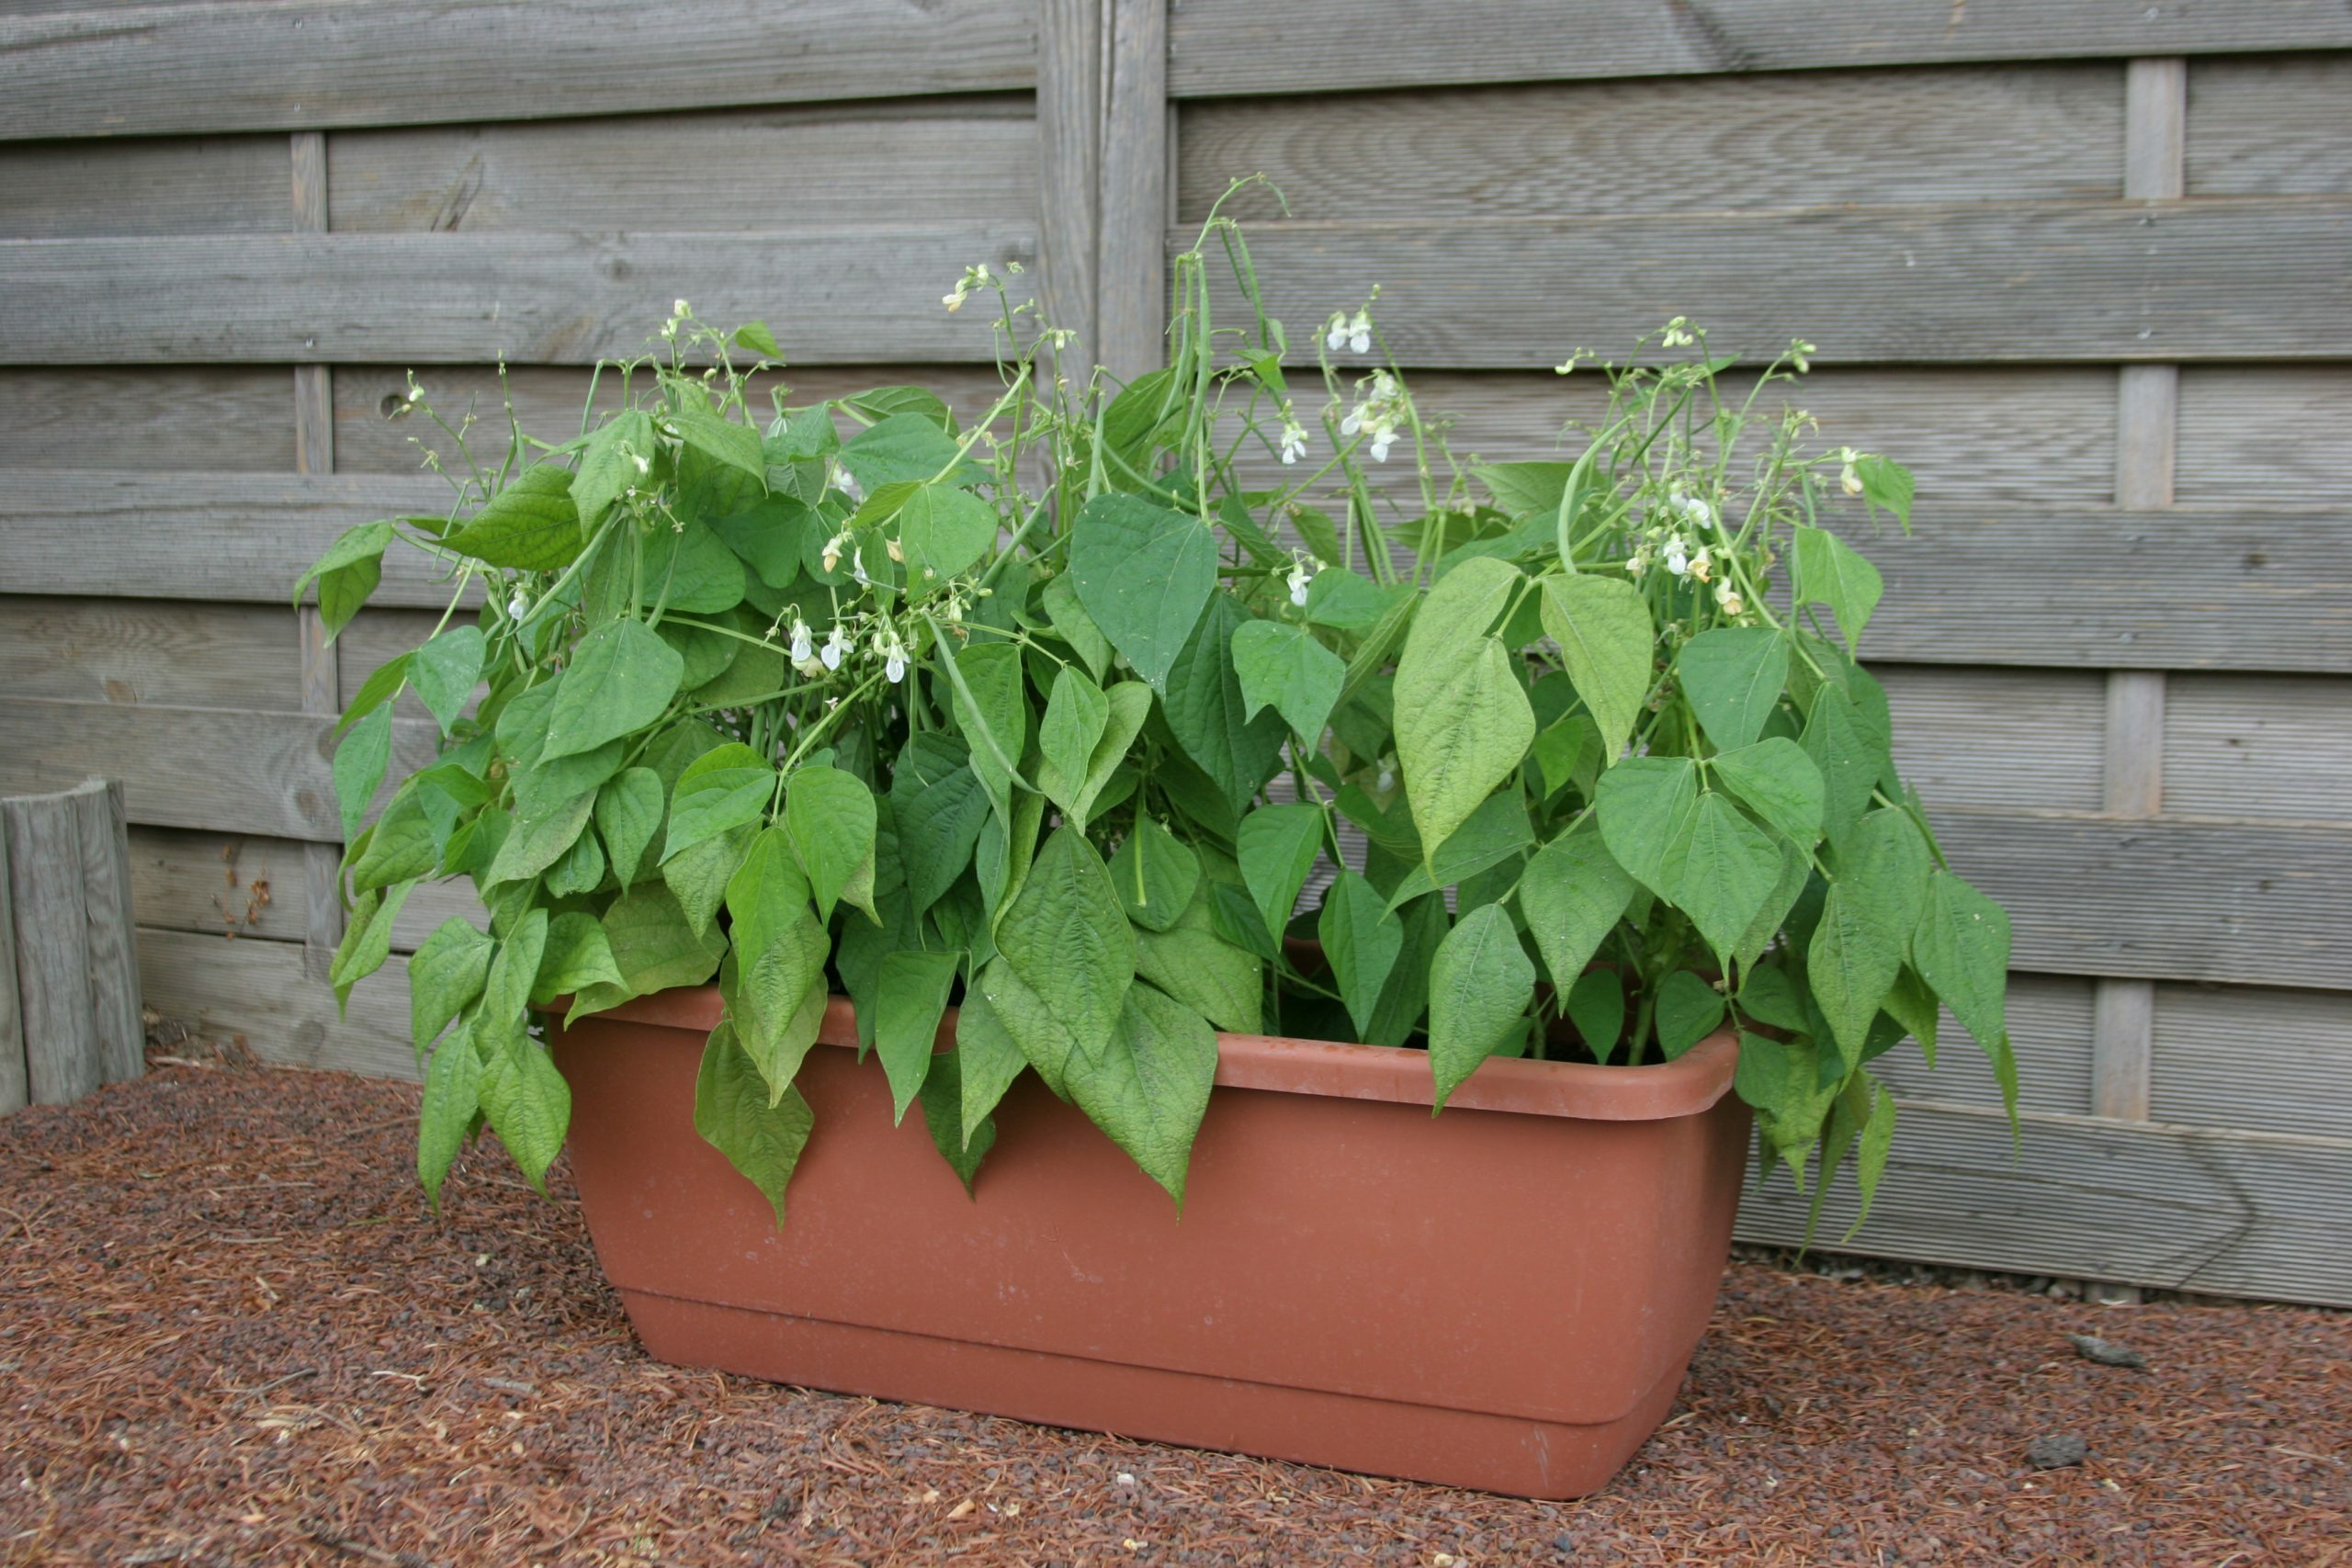 Mascotte is a fast (50 days) growing bean that provides plentiful crops on plants that are container friendly. This bush-type grows 15 inches tall with large white blooms that result in tender, stringless beans.